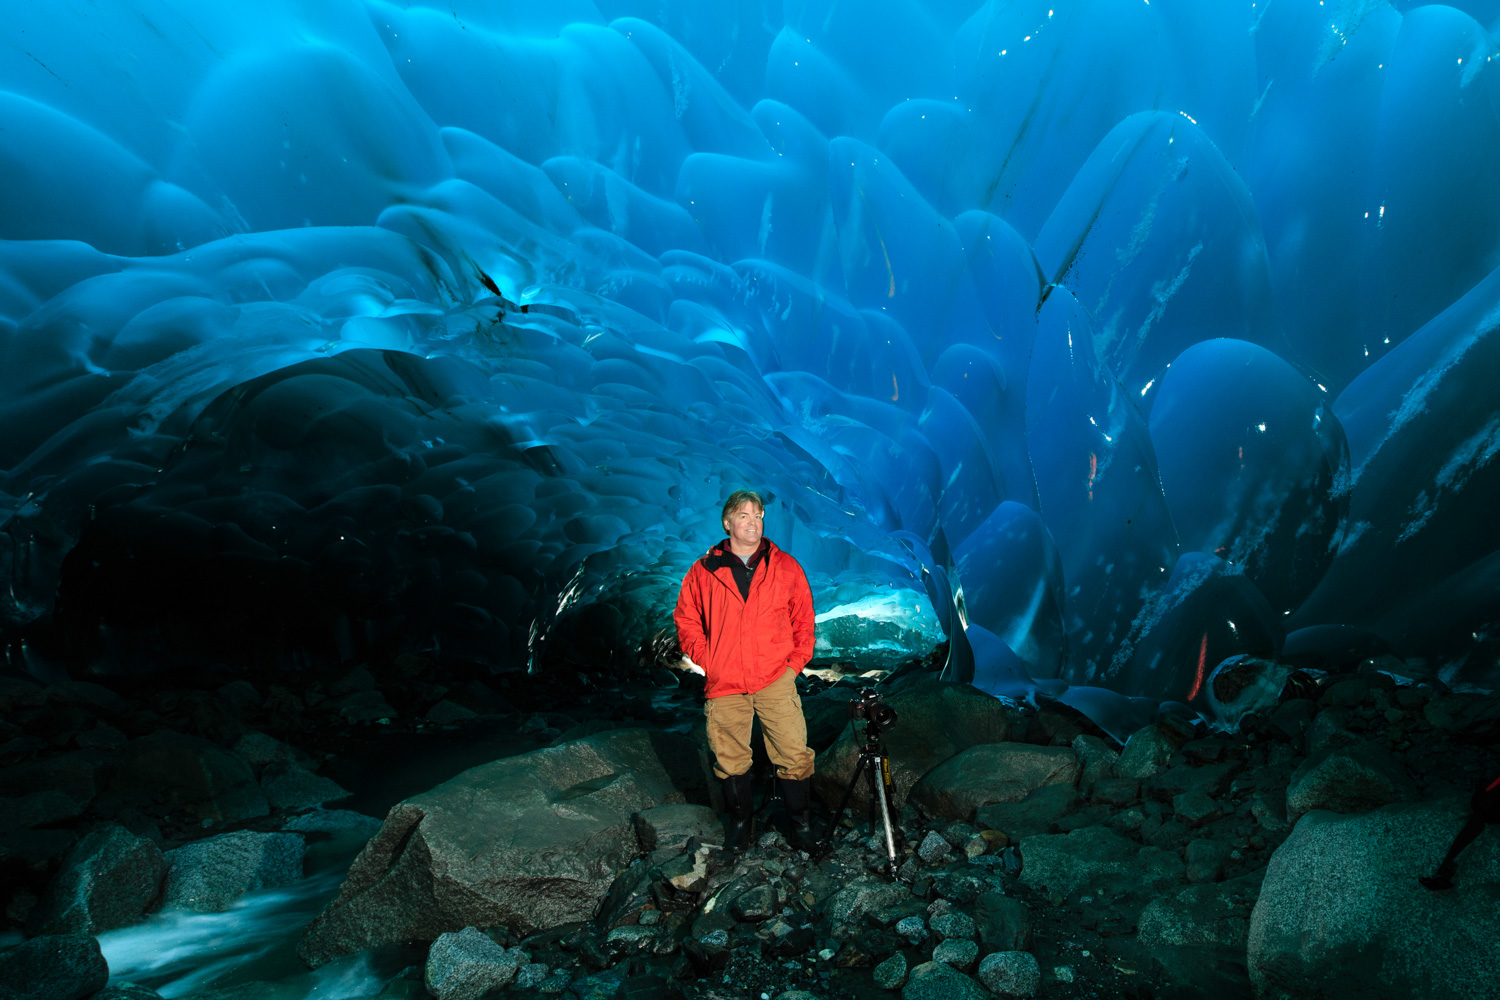 Once in the glacier, my sidekick, kayak supplier, and fellow photographer Matt Brown helped me set up the lights.